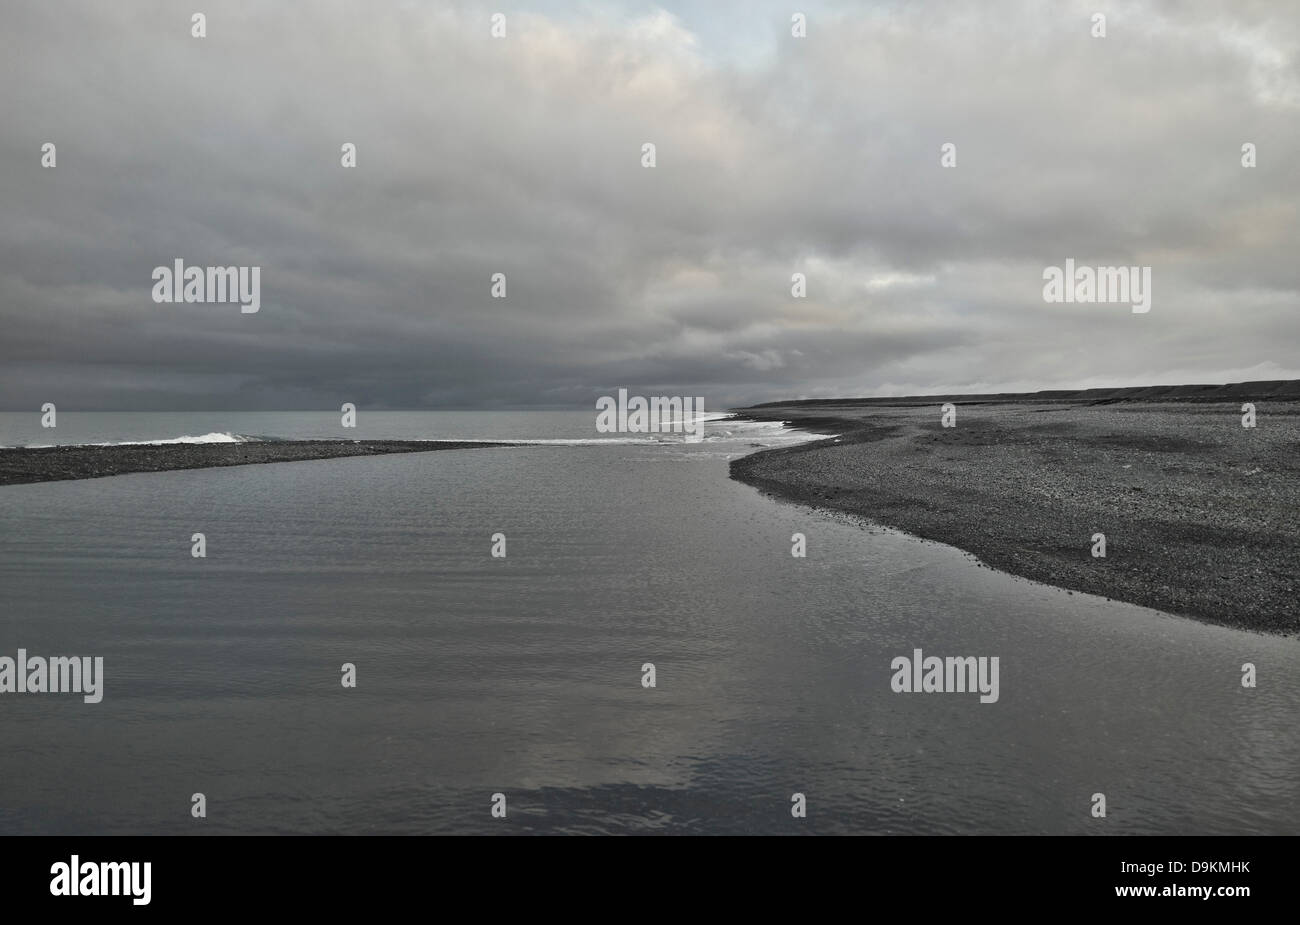 Grey lake in empty landscape - Stock Image